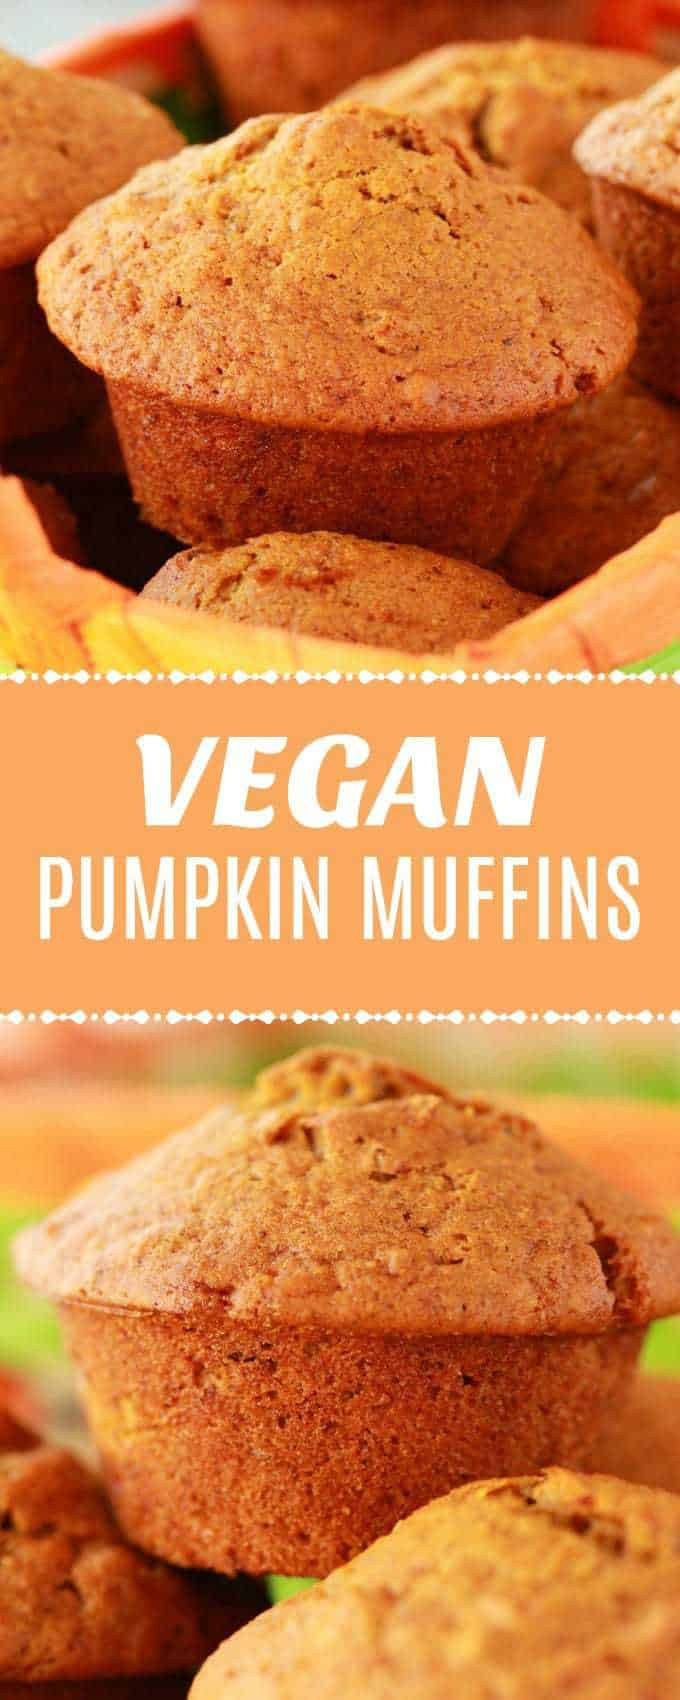 Perfectly moist vegan pumpkin muffins packed with pumpkin flavor and pecans! Deliciously fall flavored goodness, delicious served with or without vegan butter. | lovingitvegan.com